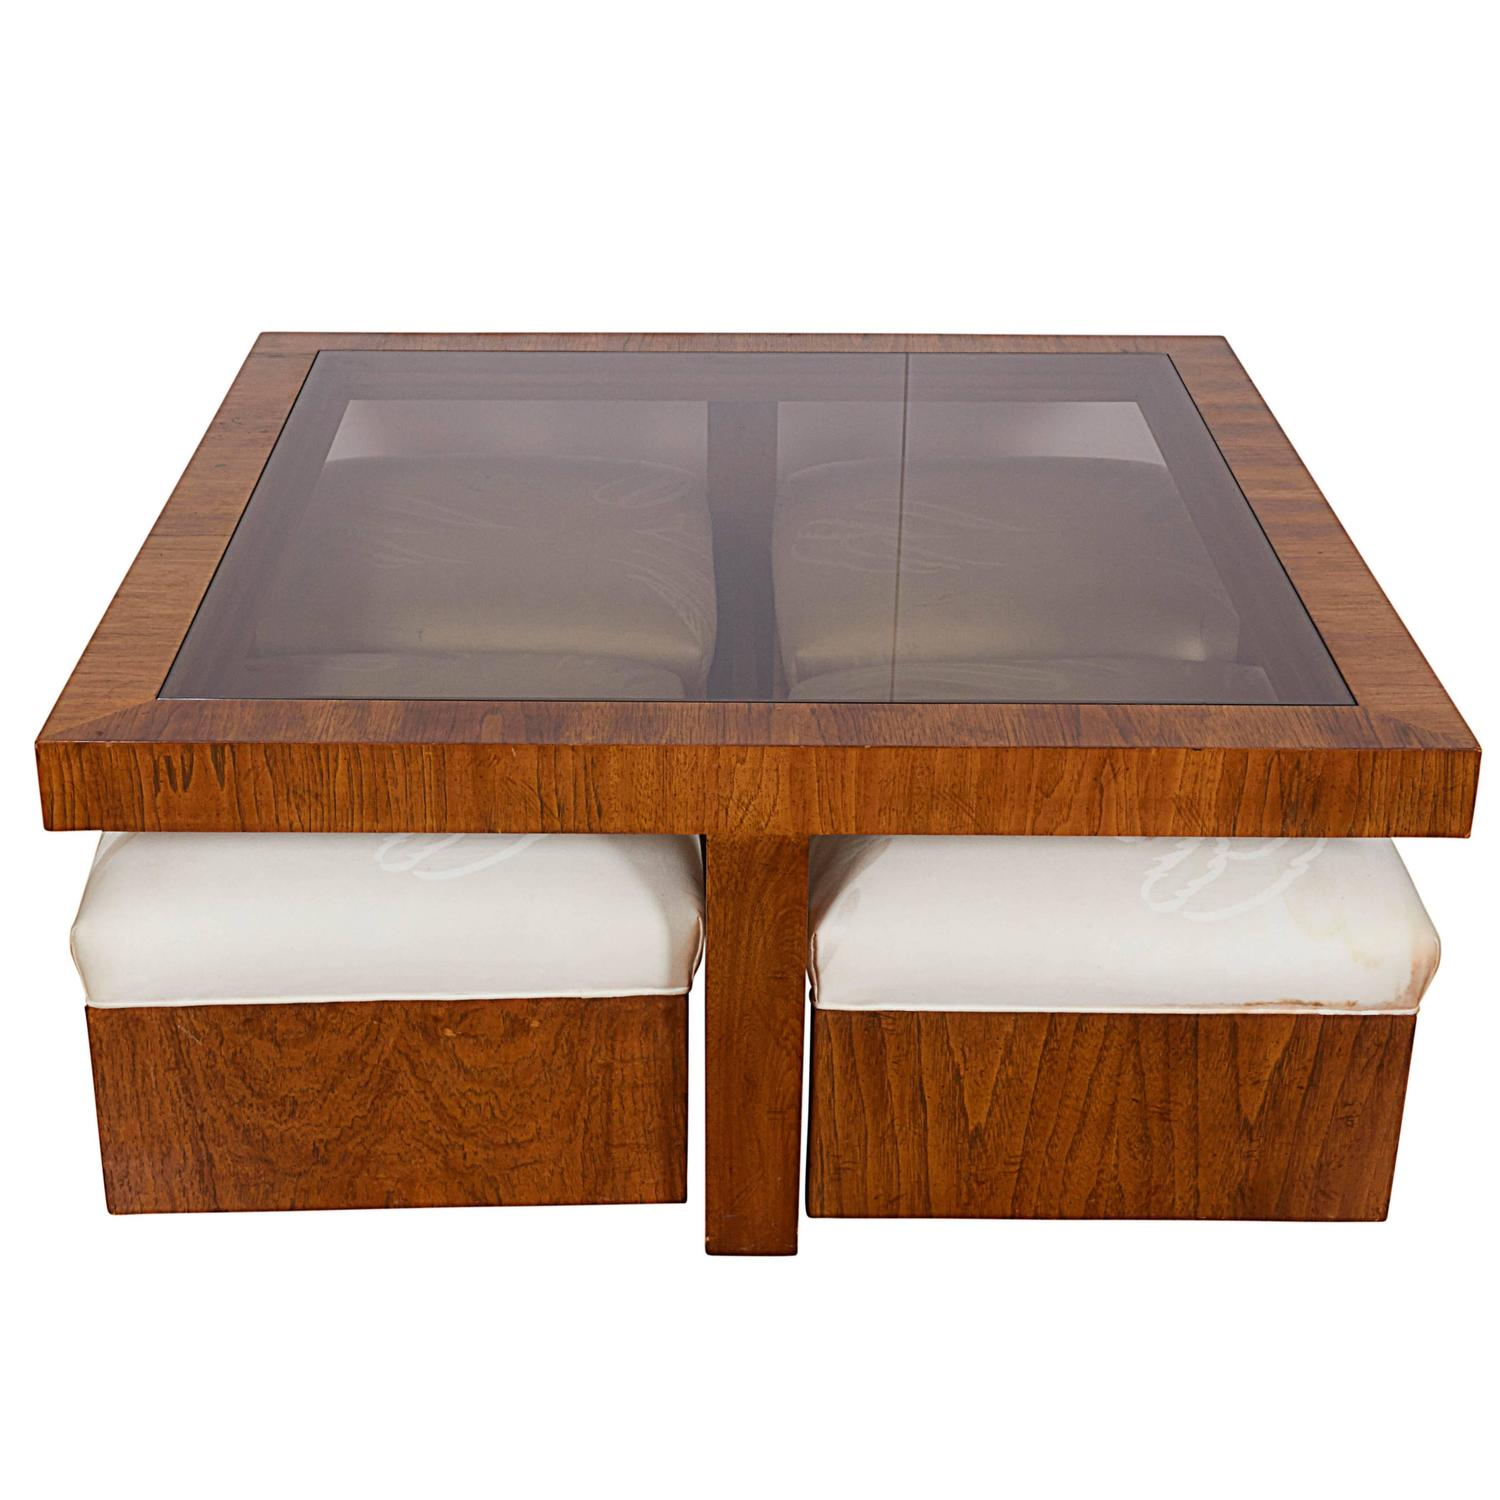 Drexel Consensus Collection Glass Top Cocktail Table With Four Ottomans For Sale At 1stdibs